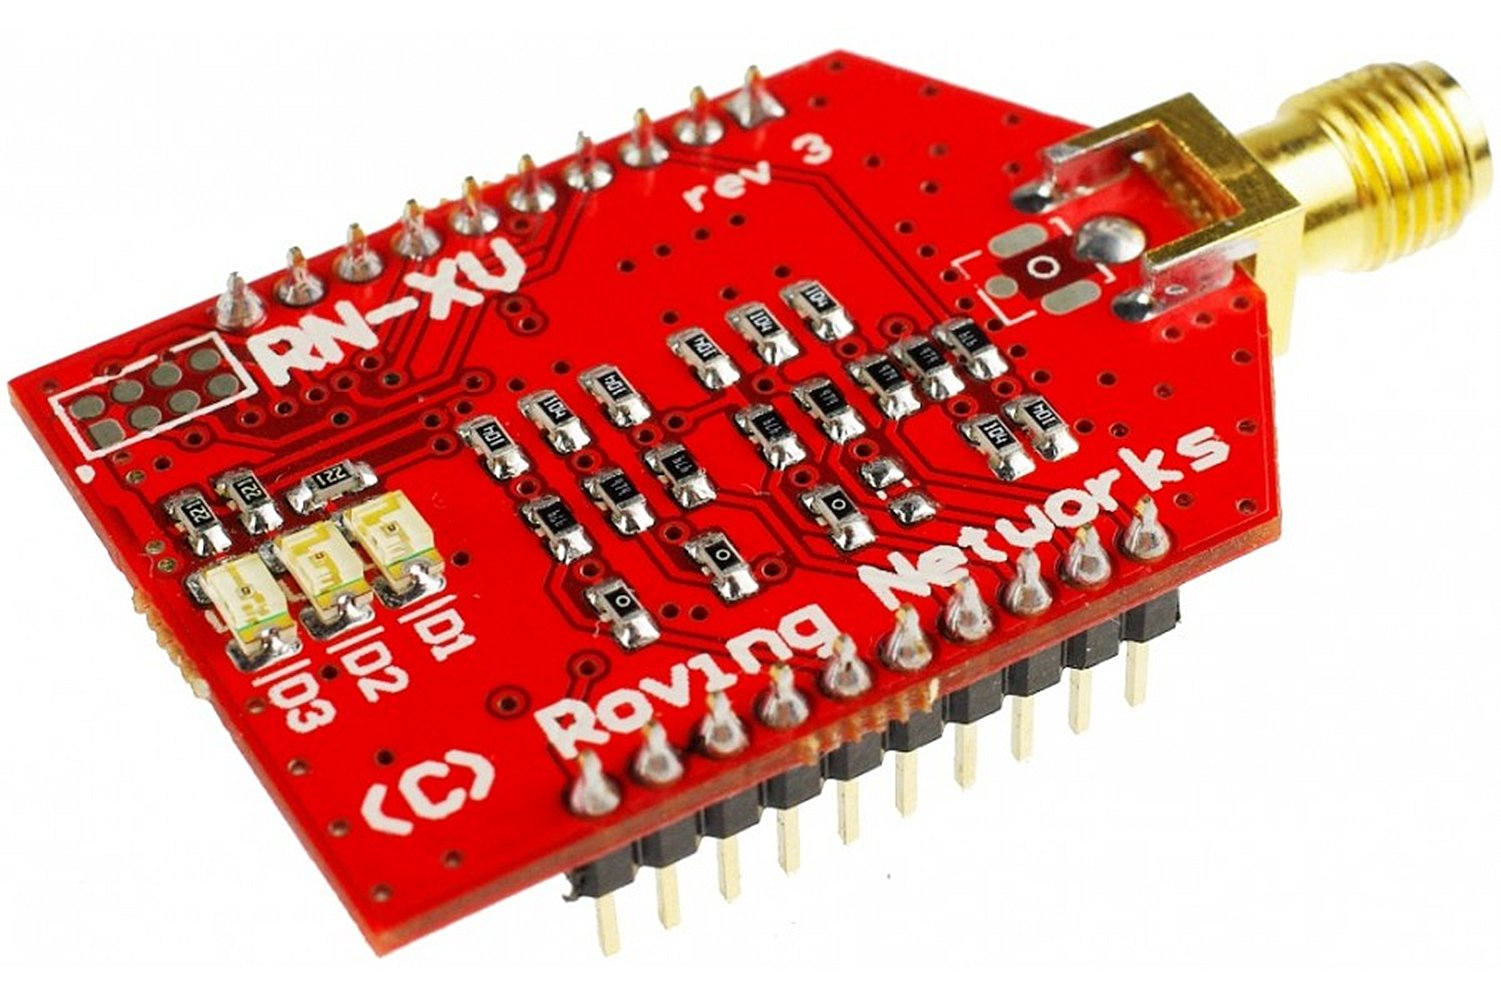 RN-XV Wifly Module - SMA Connector/Based On Common 802.15.4 Xbee Footprint/Ultra Low Power: 4ua Sleep Mode, 38ma Active by D&F